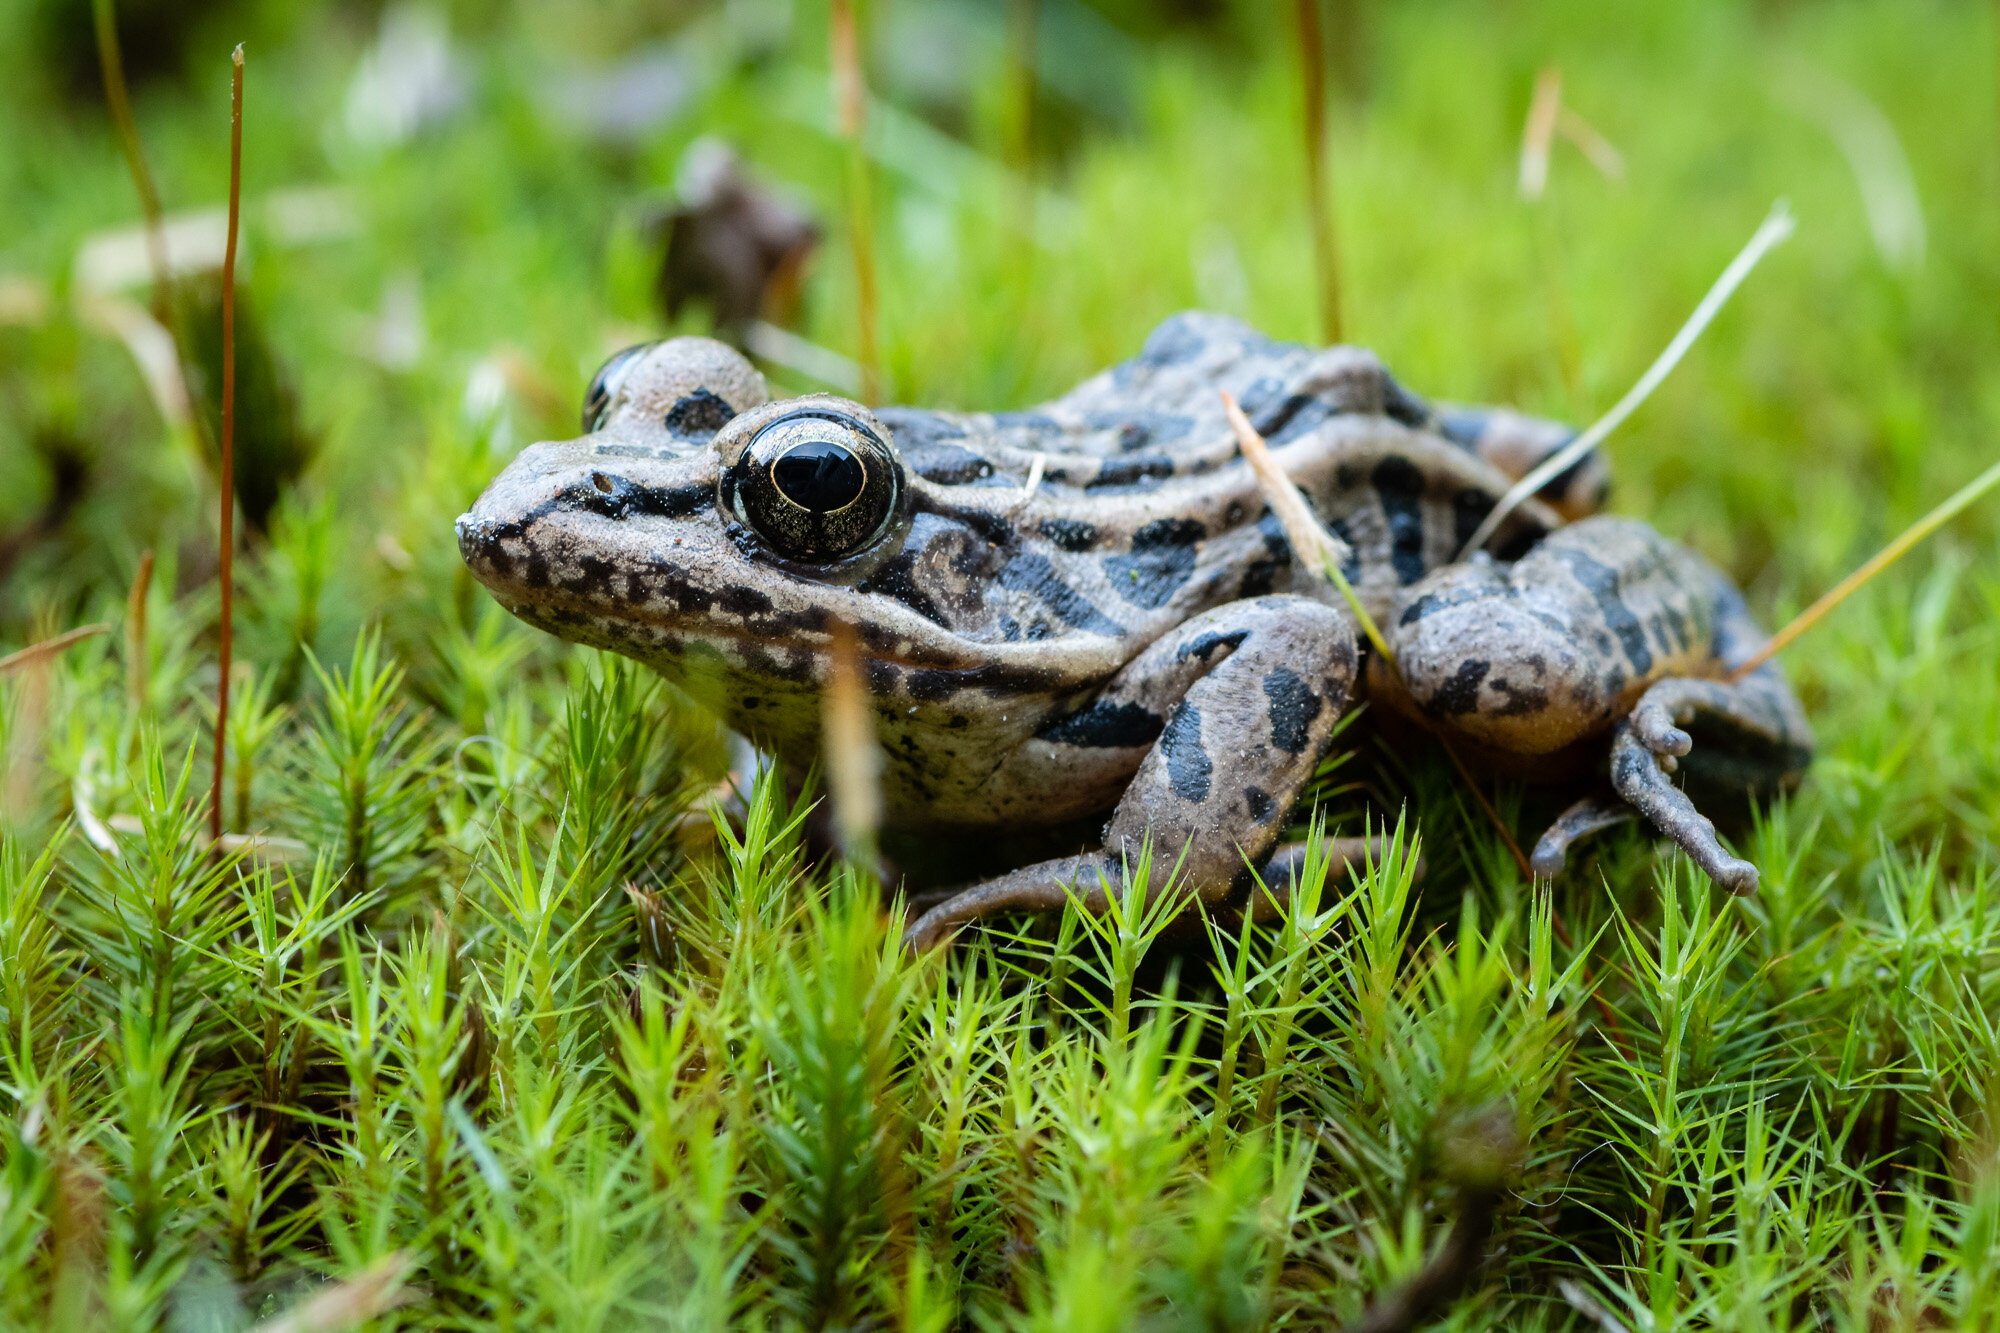 A nice simple mostly profile image of a Pickerel Frog.